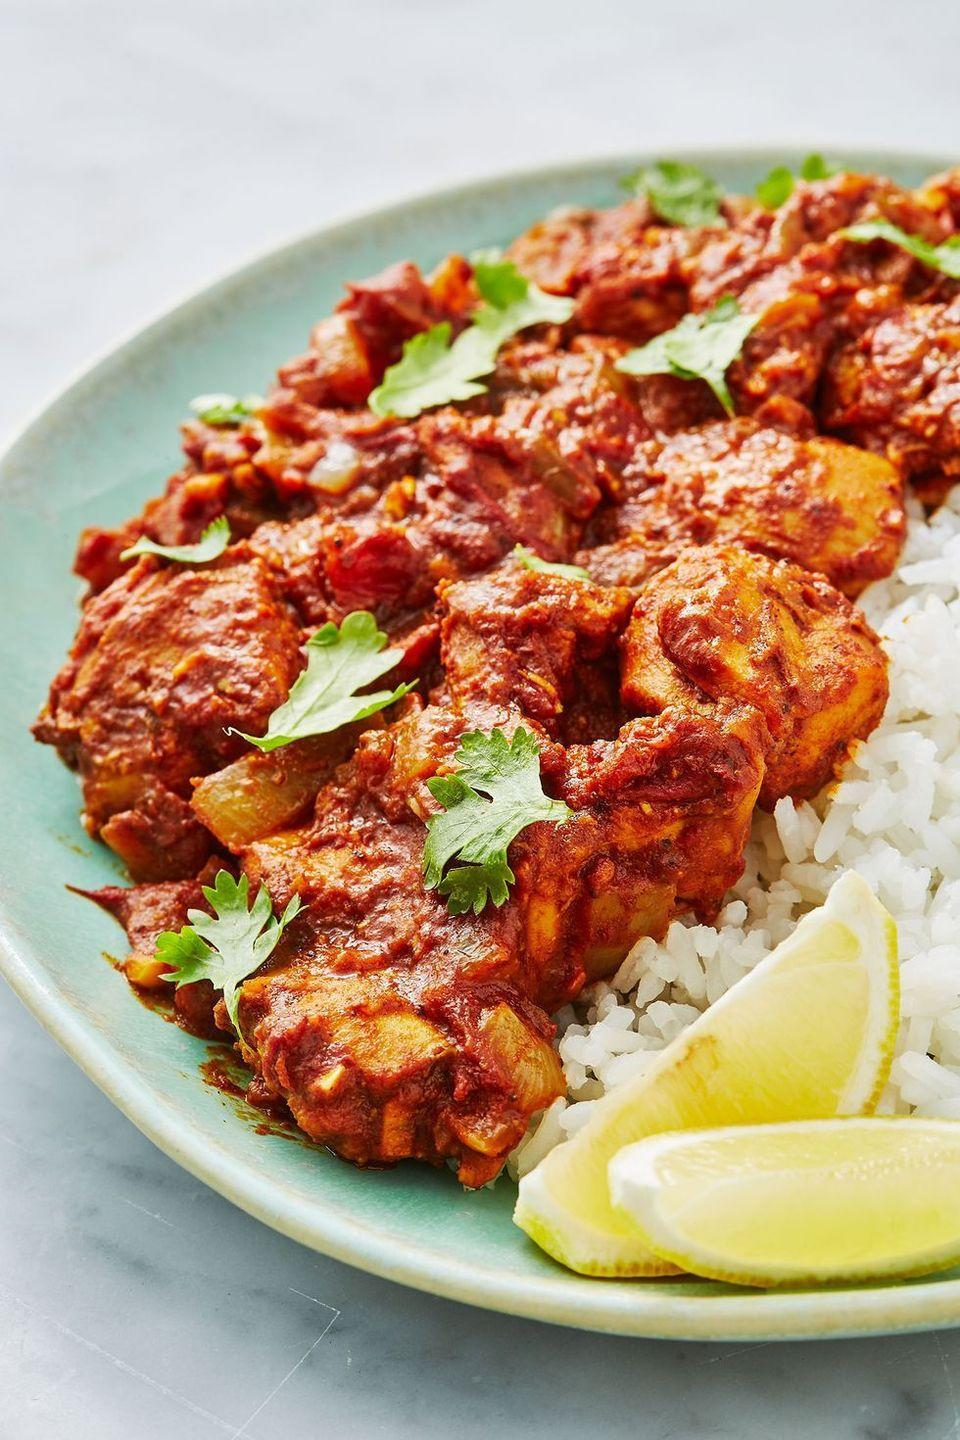 "<p>We love this easy, healthy chicken bhuna recipe, a sure-fire dinner table win - the ultimate crowd pleaser.</p><p>Get the <a href=""https://www.delish.com/uk/cooking/recipes/a28867202/chicken-bhuna/"" rel=""nofollow noopener"" target=""_blank"" data-ylk=""slk:Chicken Bhuna"" class=""link rapid-noclick-resp"">Chicken Bhuna</a> recipe.</p>"